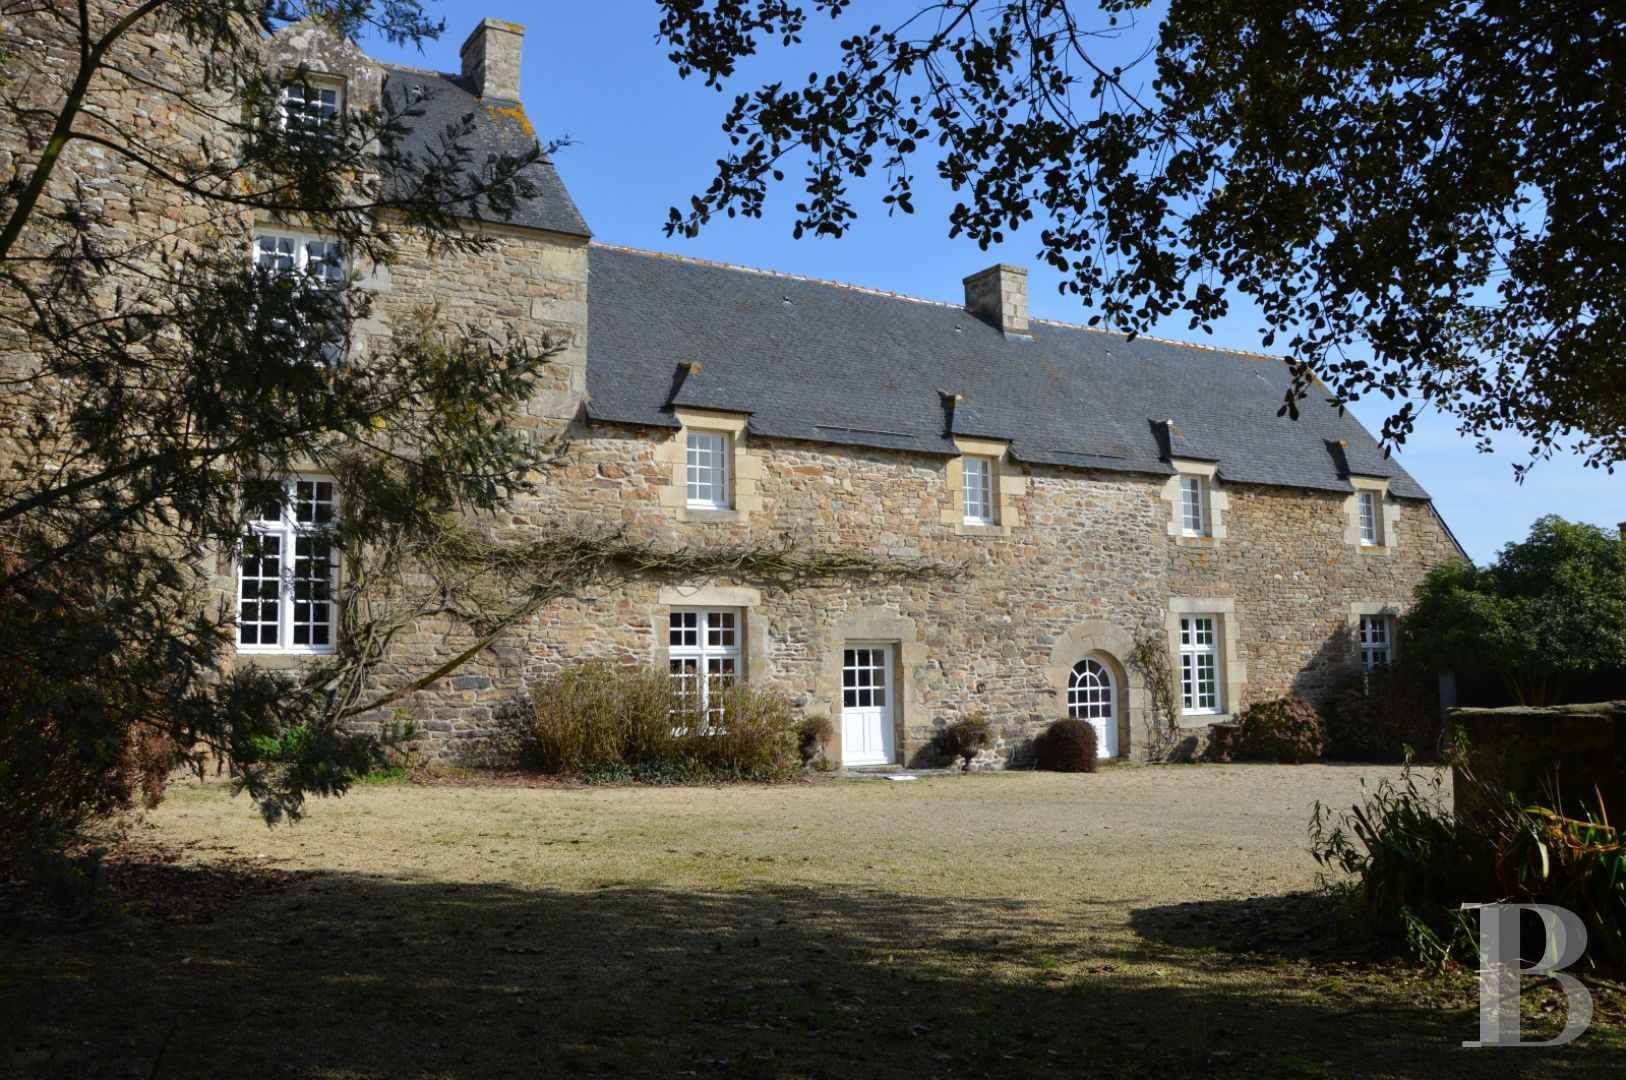 France mansions for sale brittany residence brittany - 2 zoom